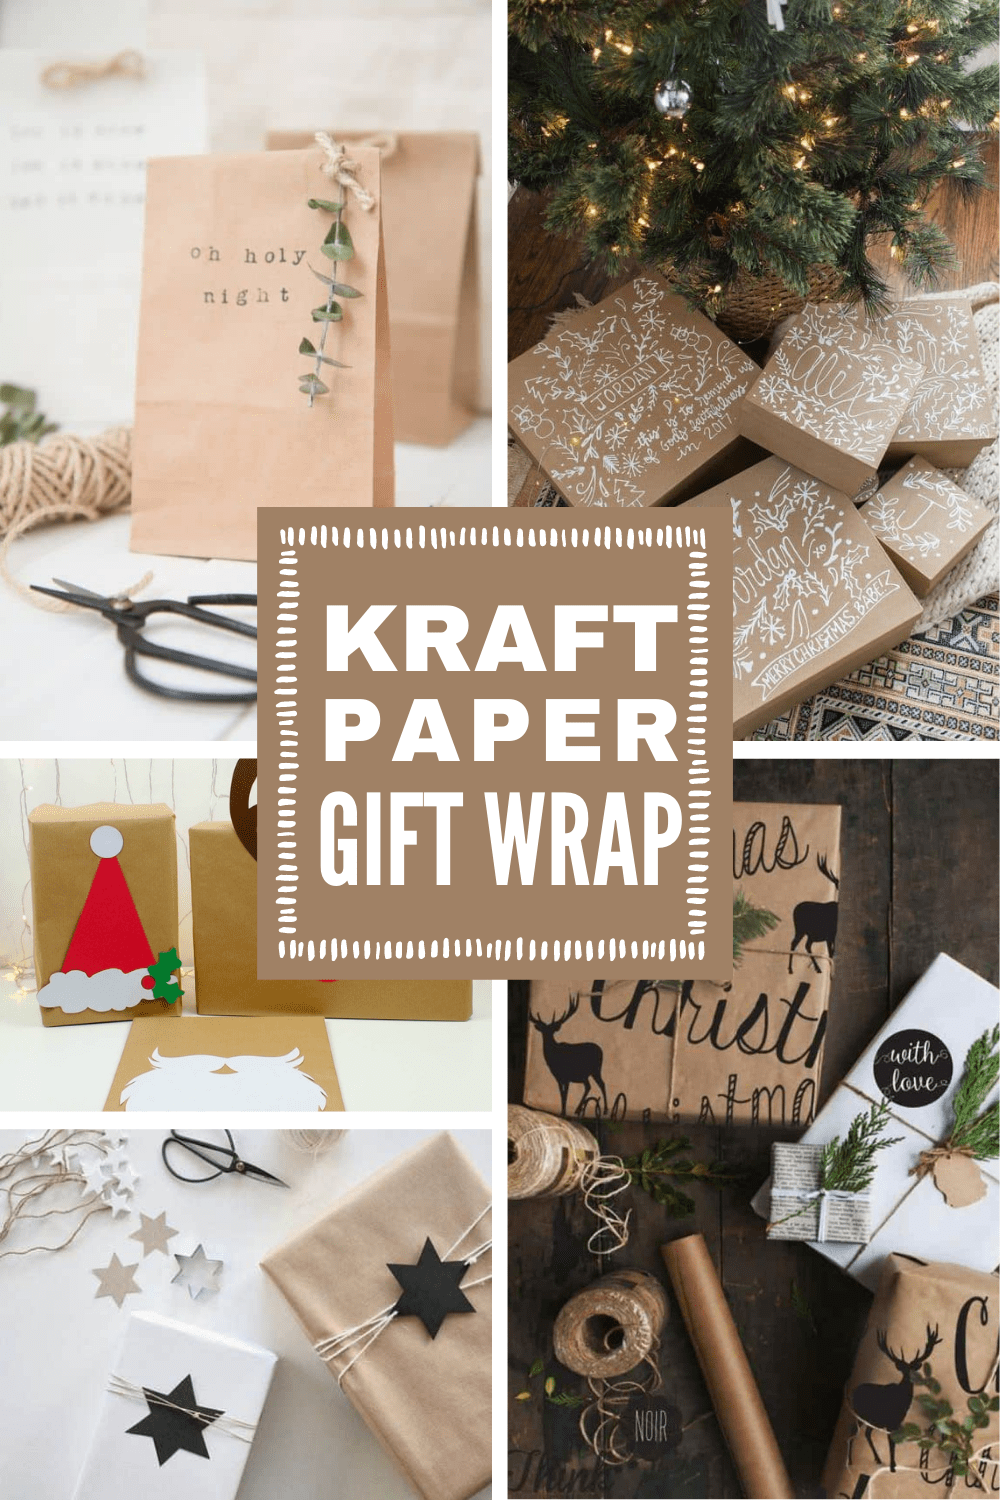 Forget store bought paper this year - you can make your gifts look extra special with a roll of kraft brown paper and a bit of imagination! #christmas #giftwrap #wrappingpaper #kraftpaper